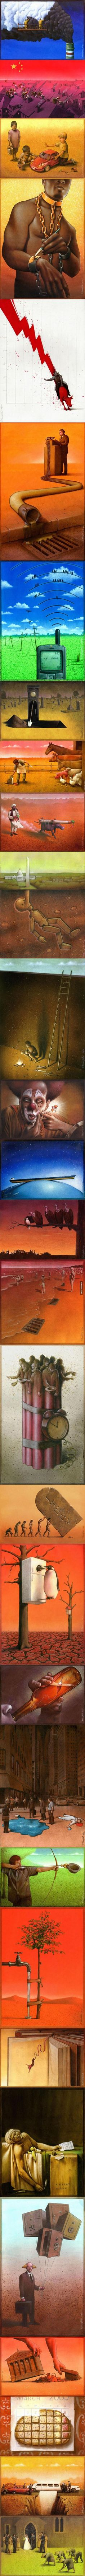 30 Satirical images created by Pawel Kuczynski - 9GAG on imgfave  I like this